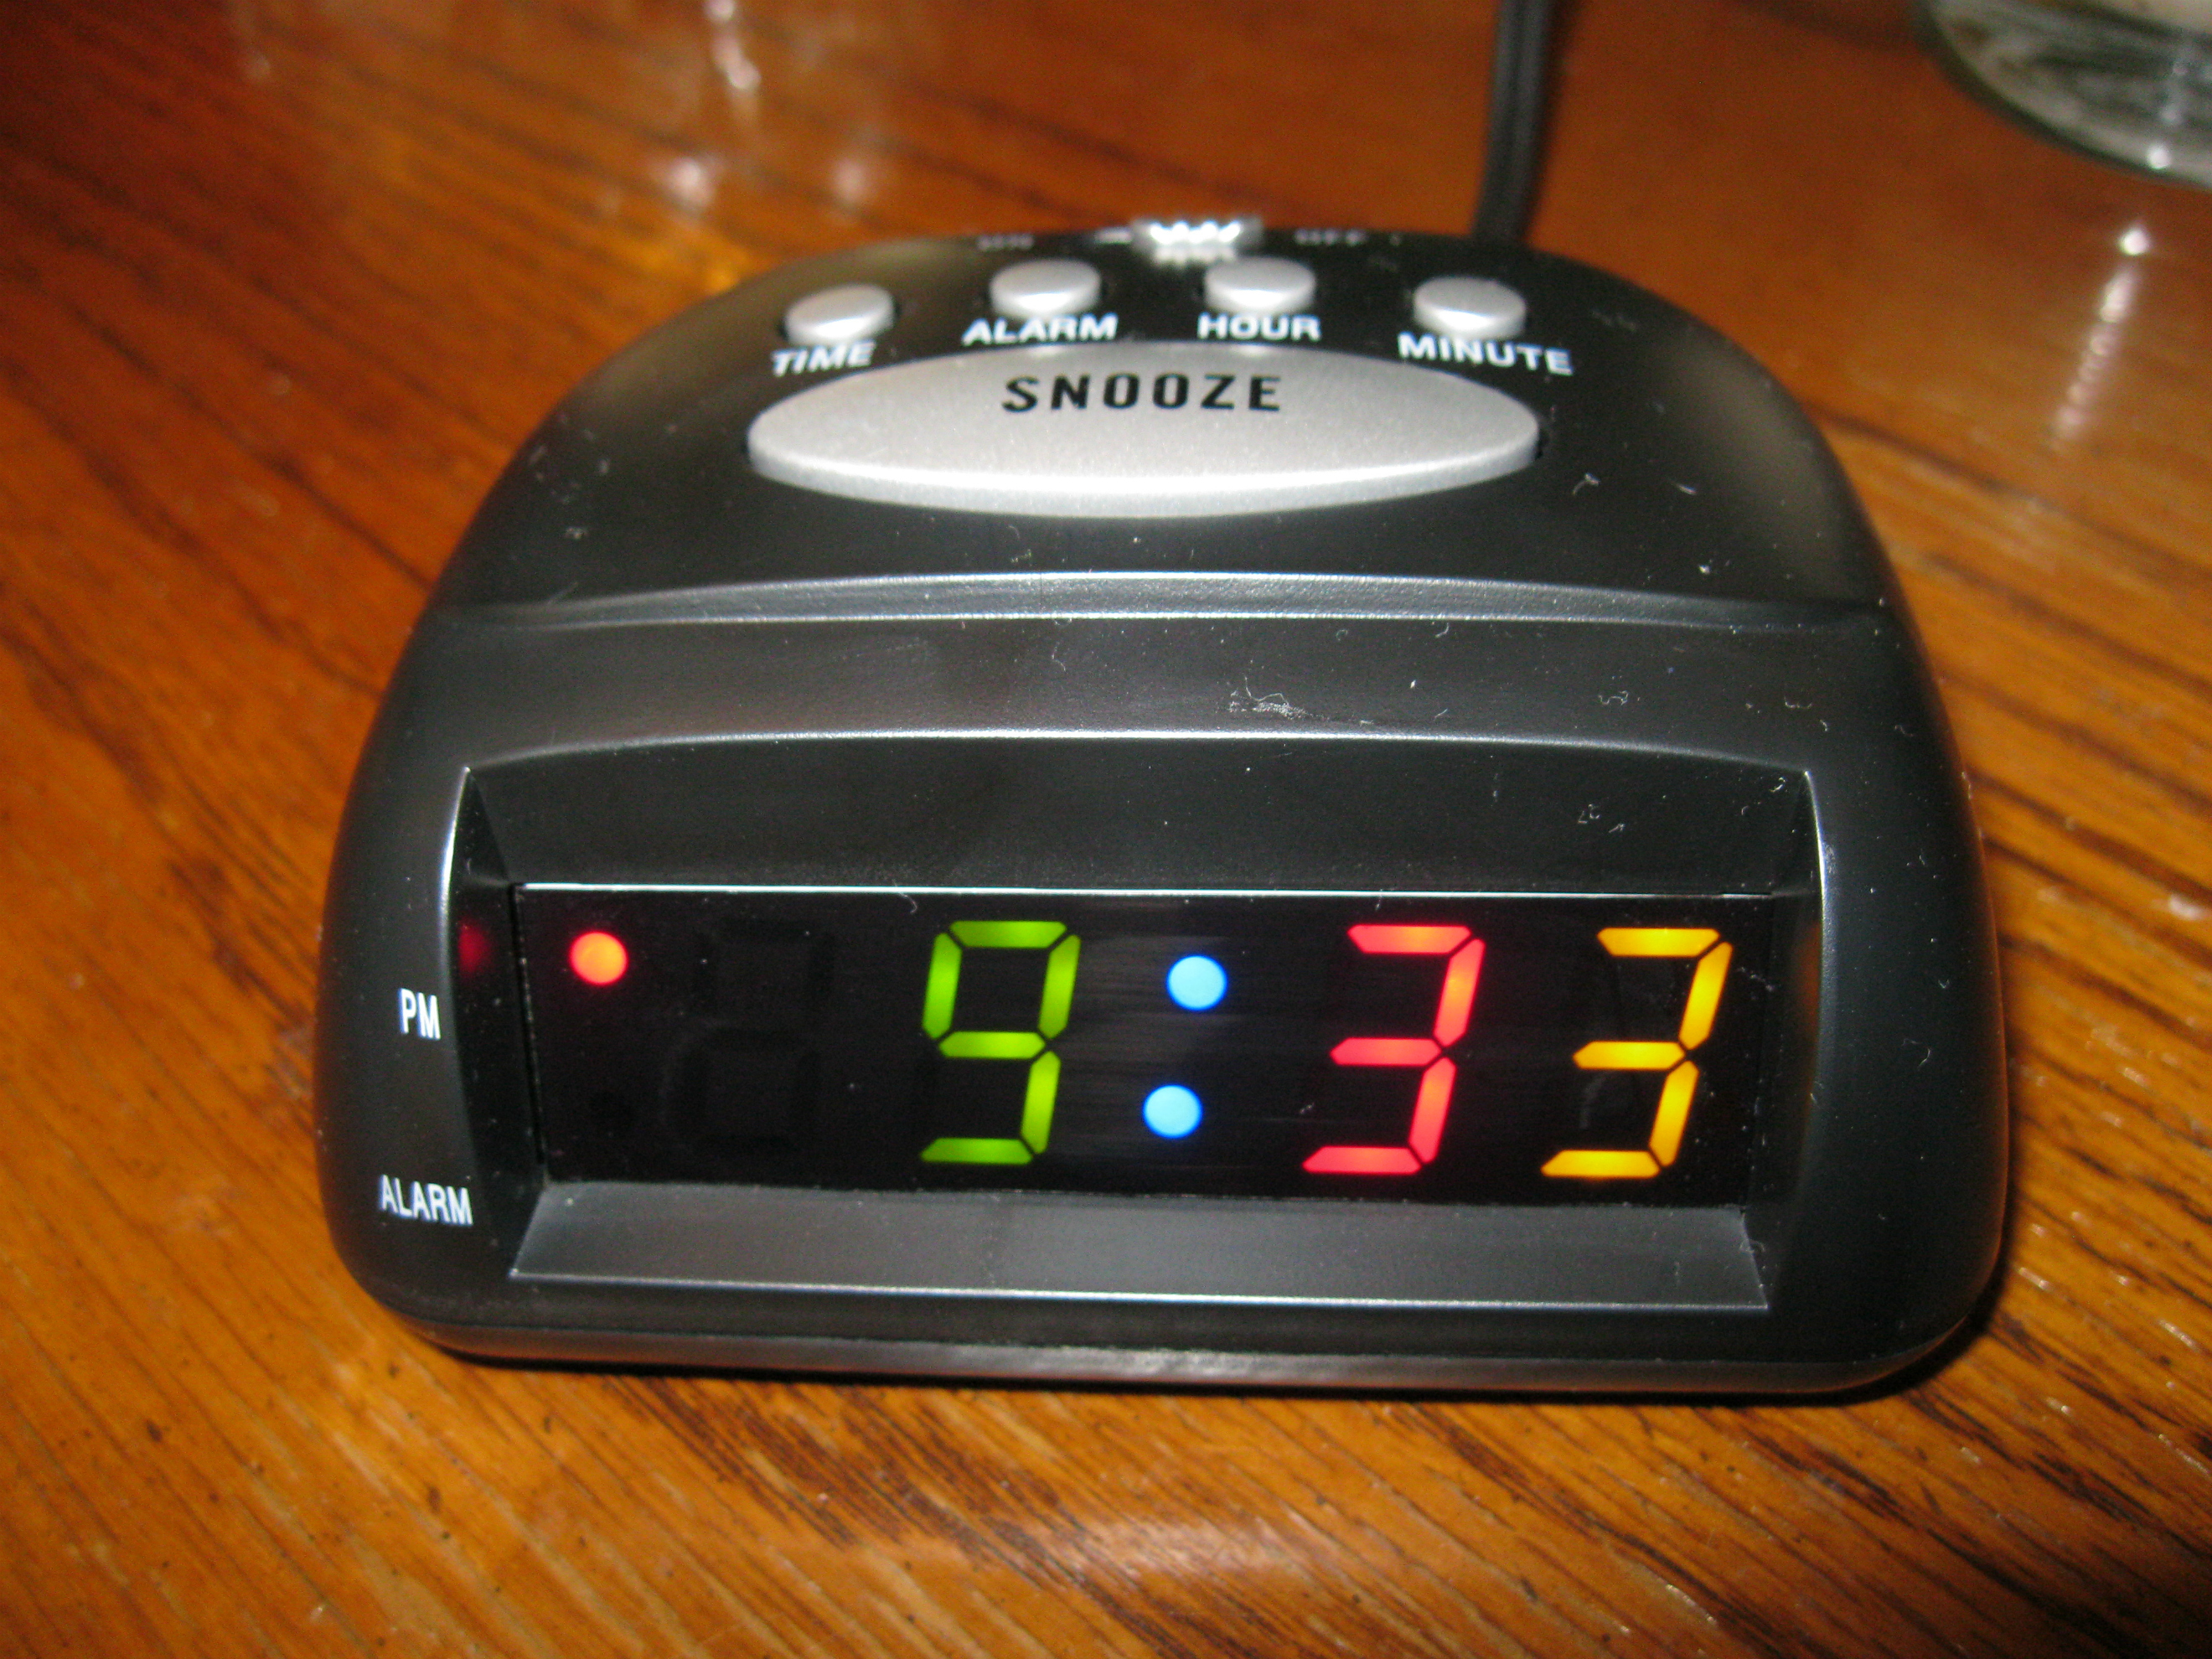 how to set time on maxim digital clock